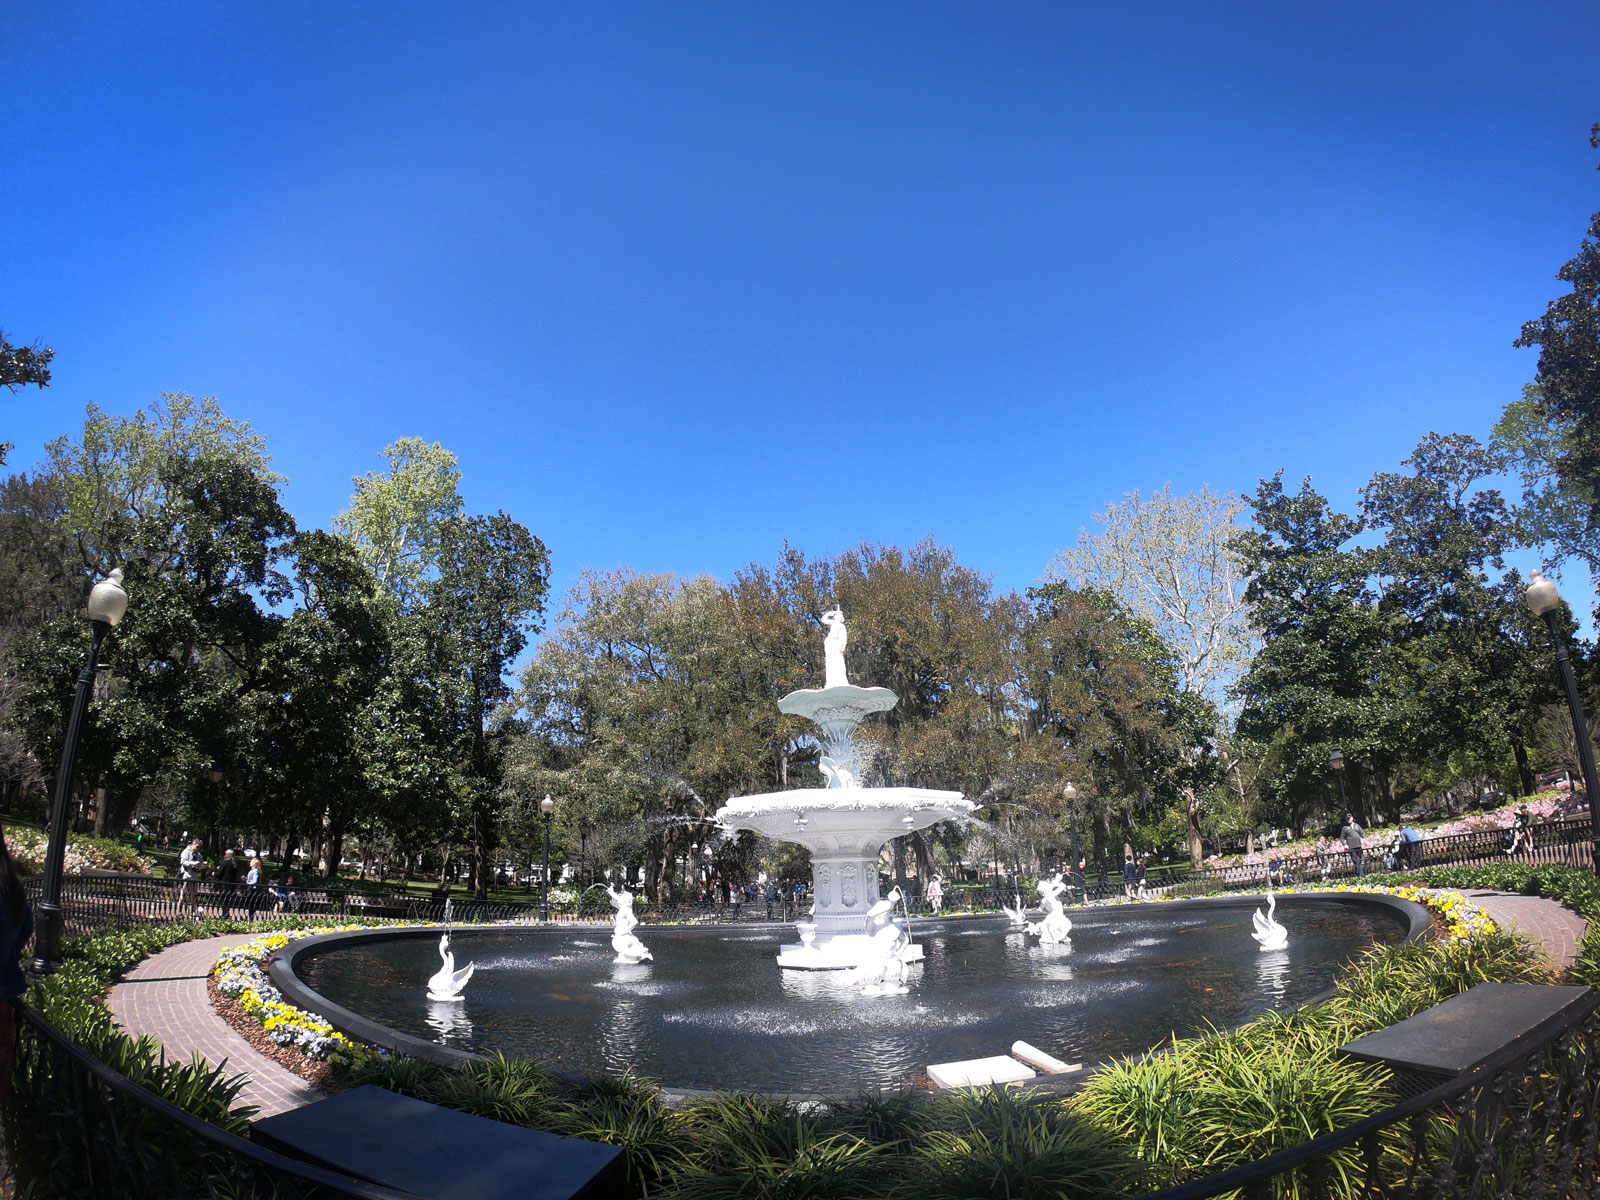 Iconic Forsyth Park fountain in Savannah, Georgia